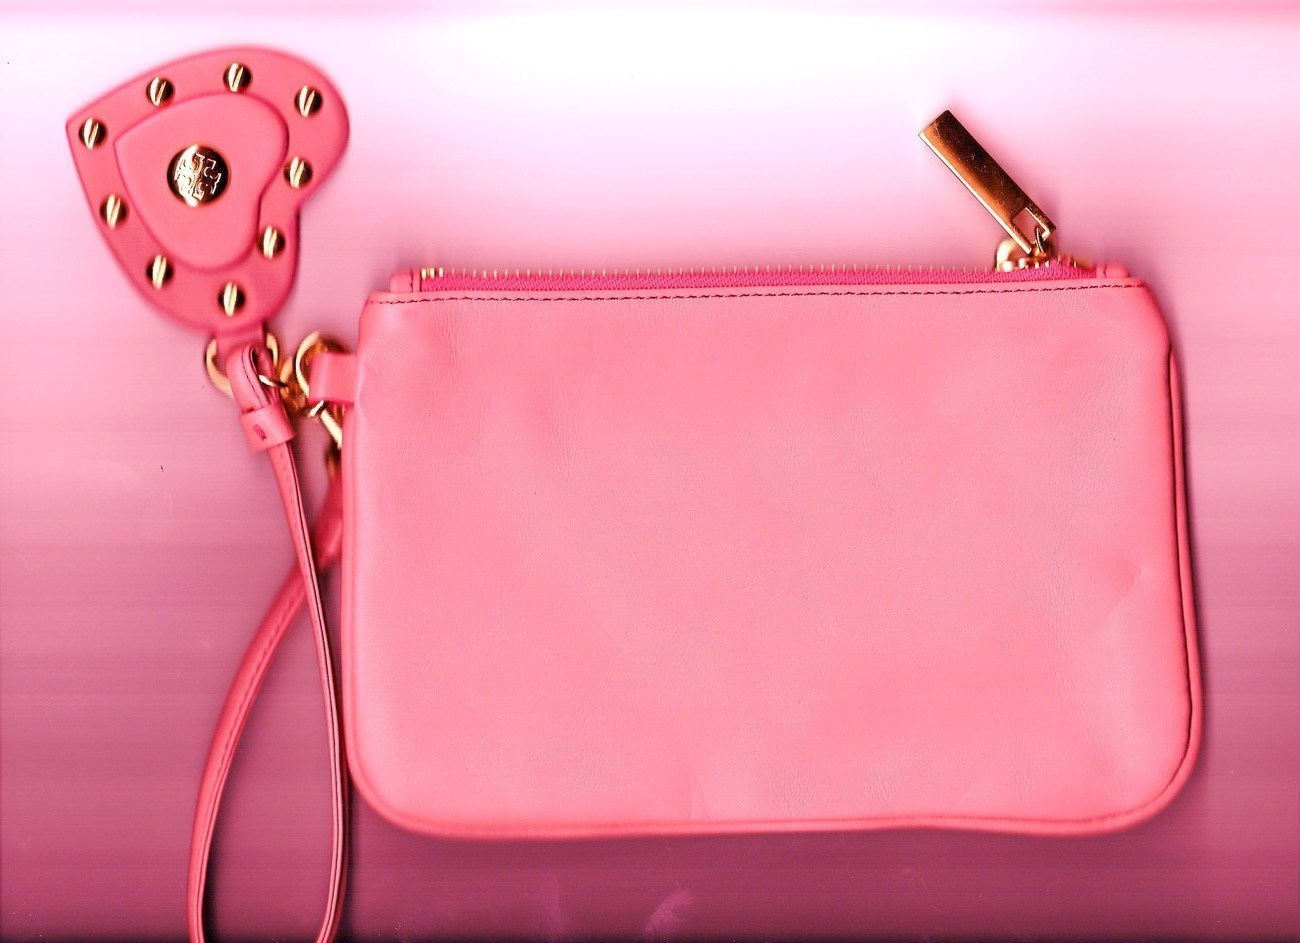 Torry  Burch Fashion Design Clutch Purse, Leather, Pink